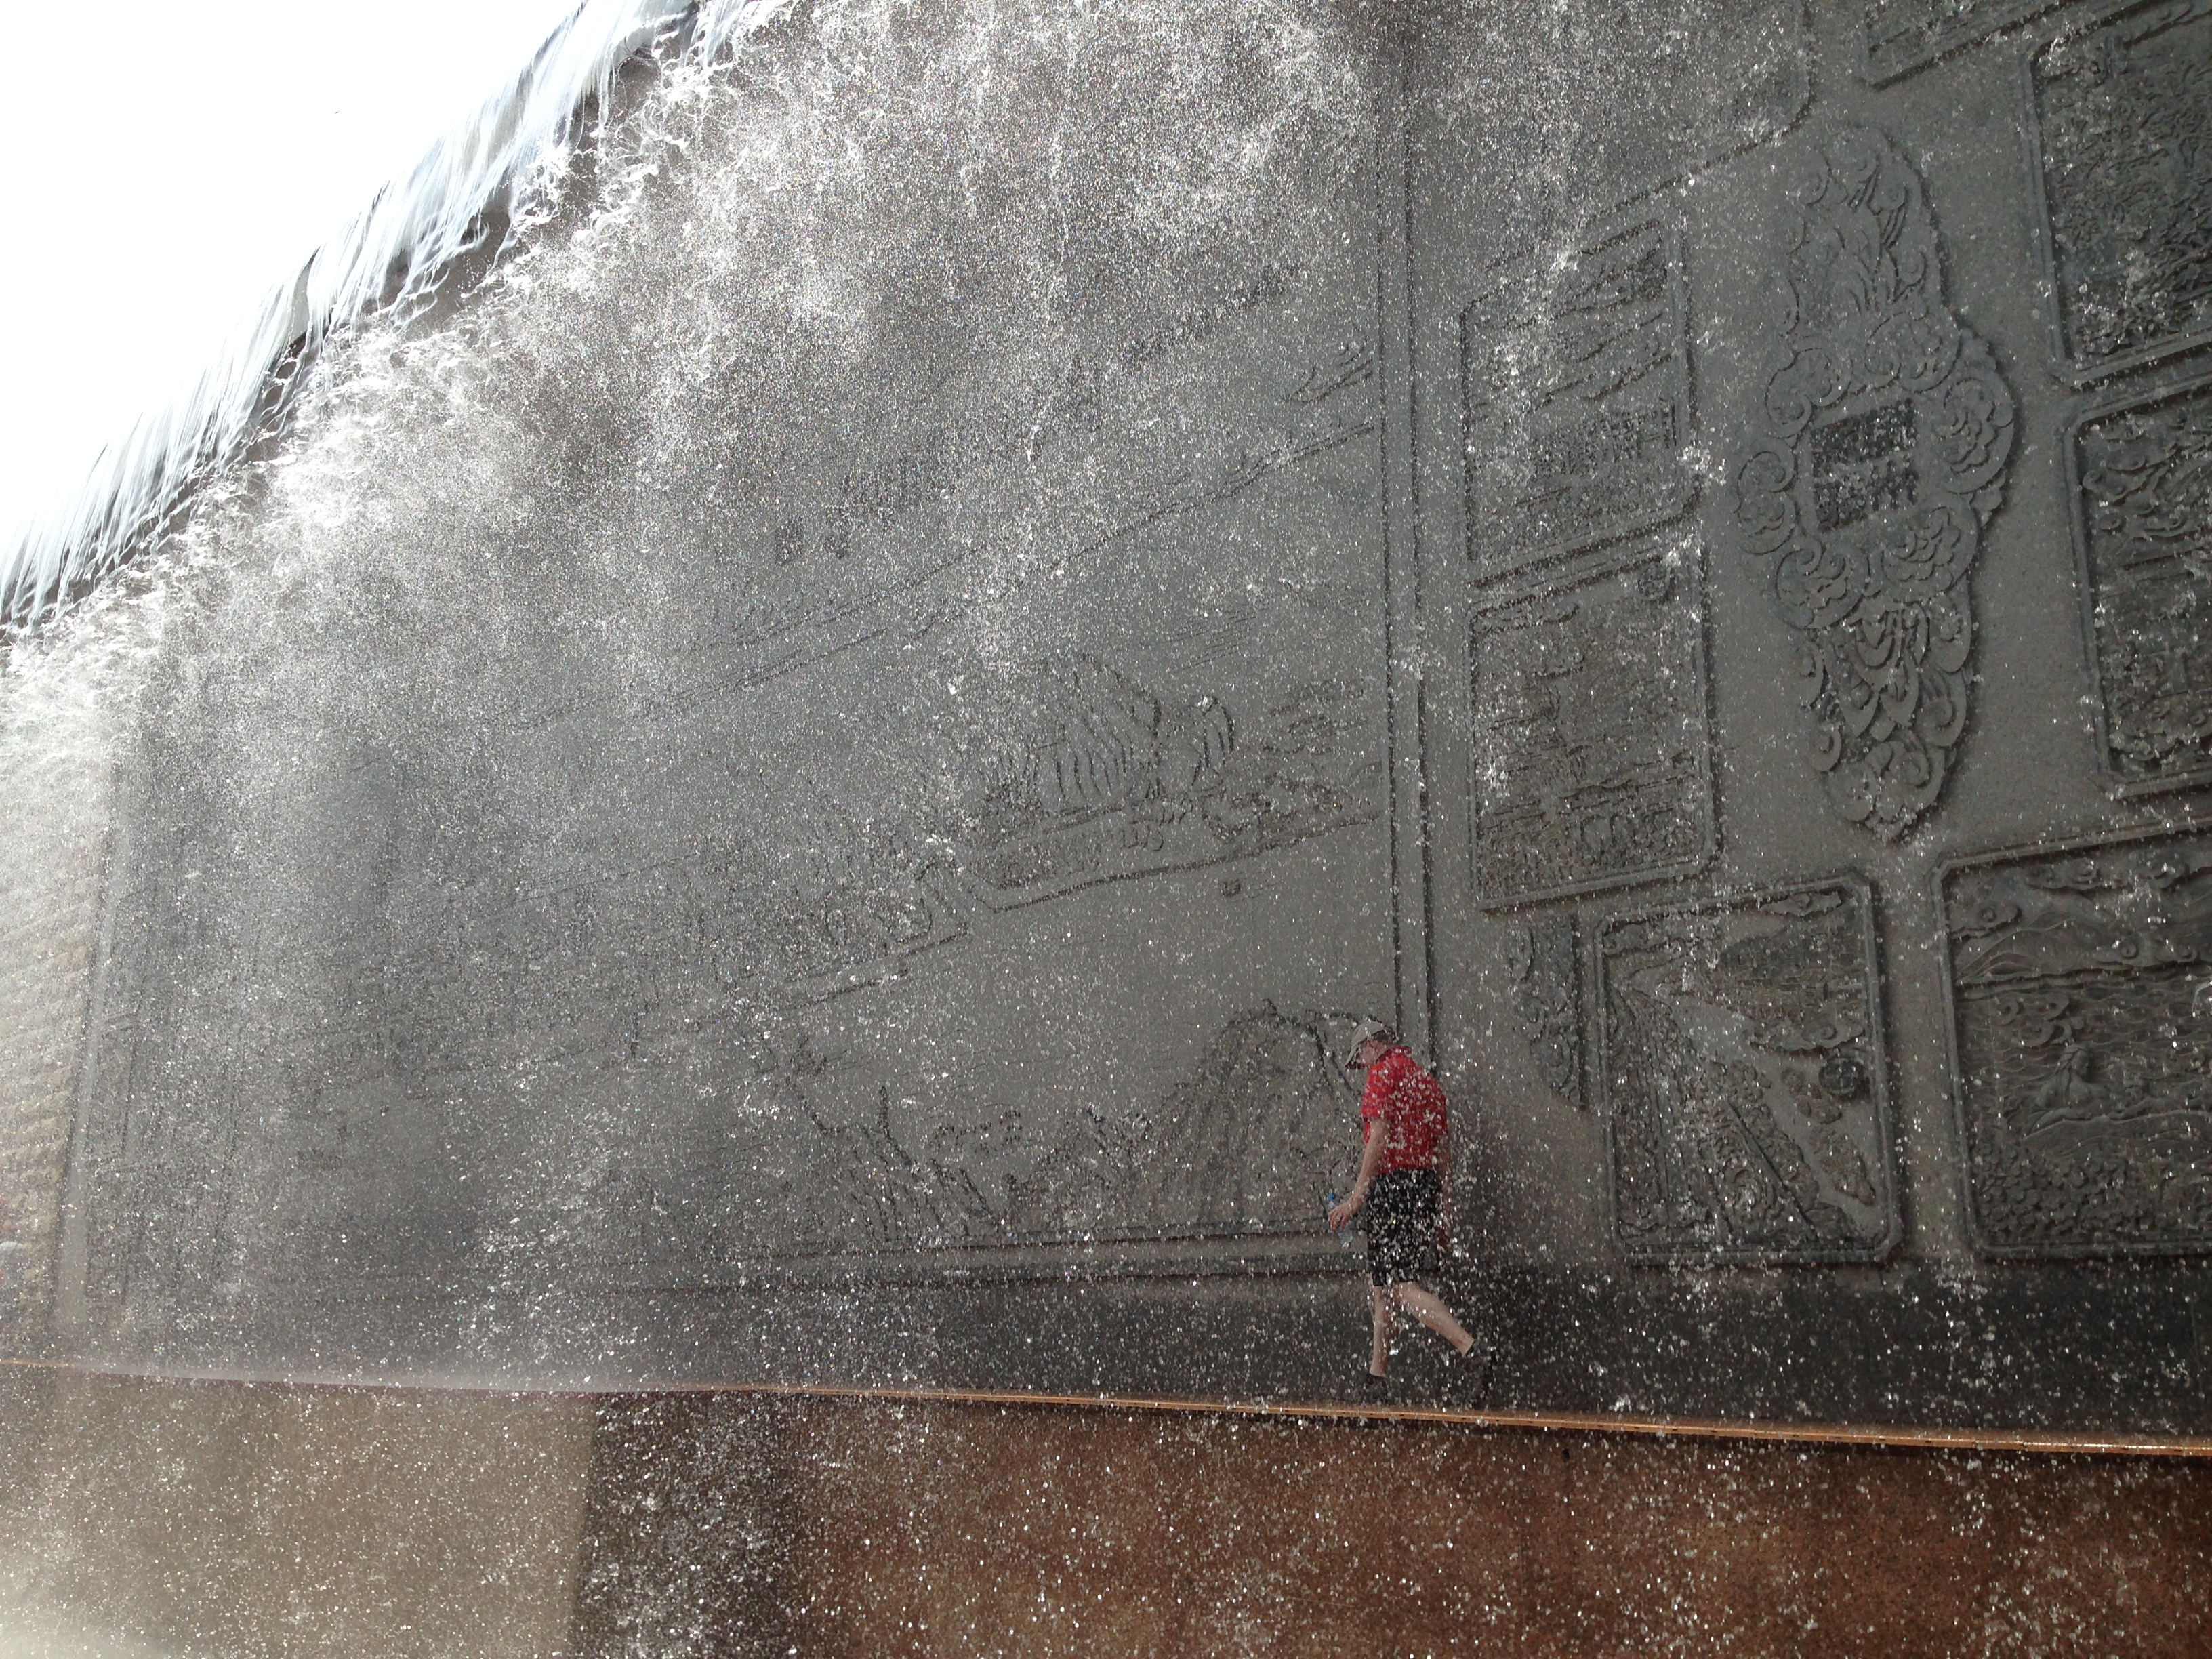 Waterfall on the way to the Buddhist Temple in Lanzhou, June 8